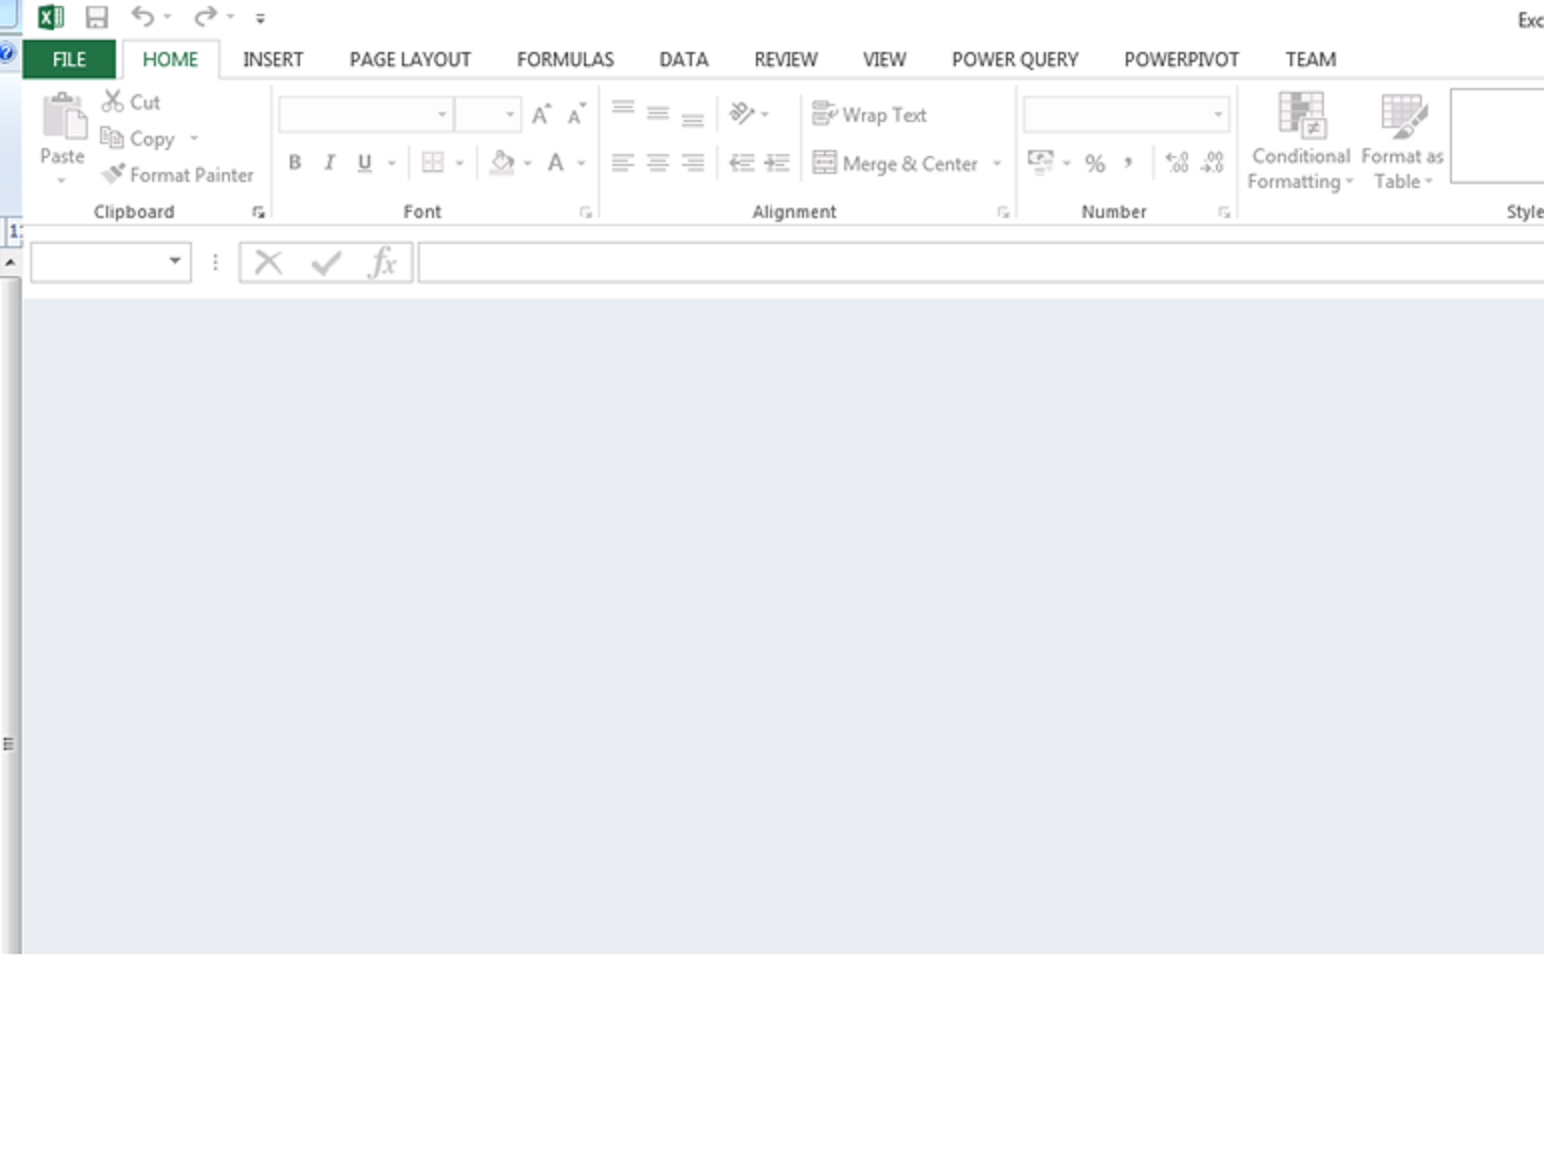 Export To Excel Produces Blank Sheet And Ribbon Disabled